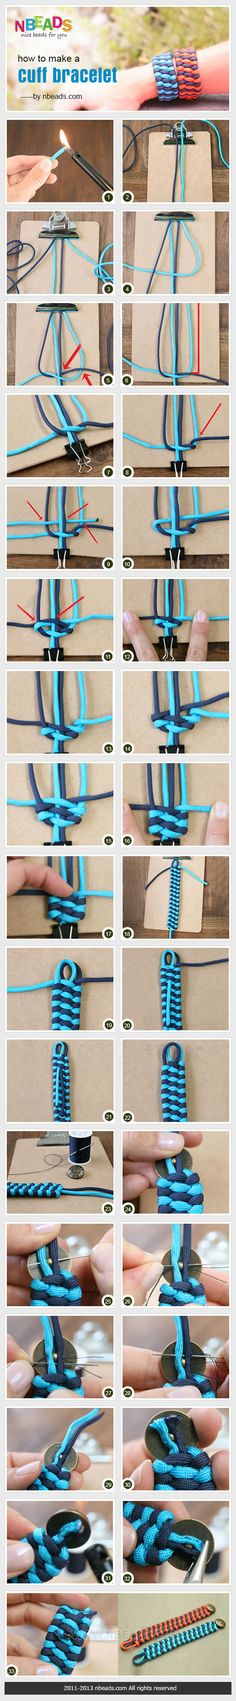 How to Make A Cuff Bracelet